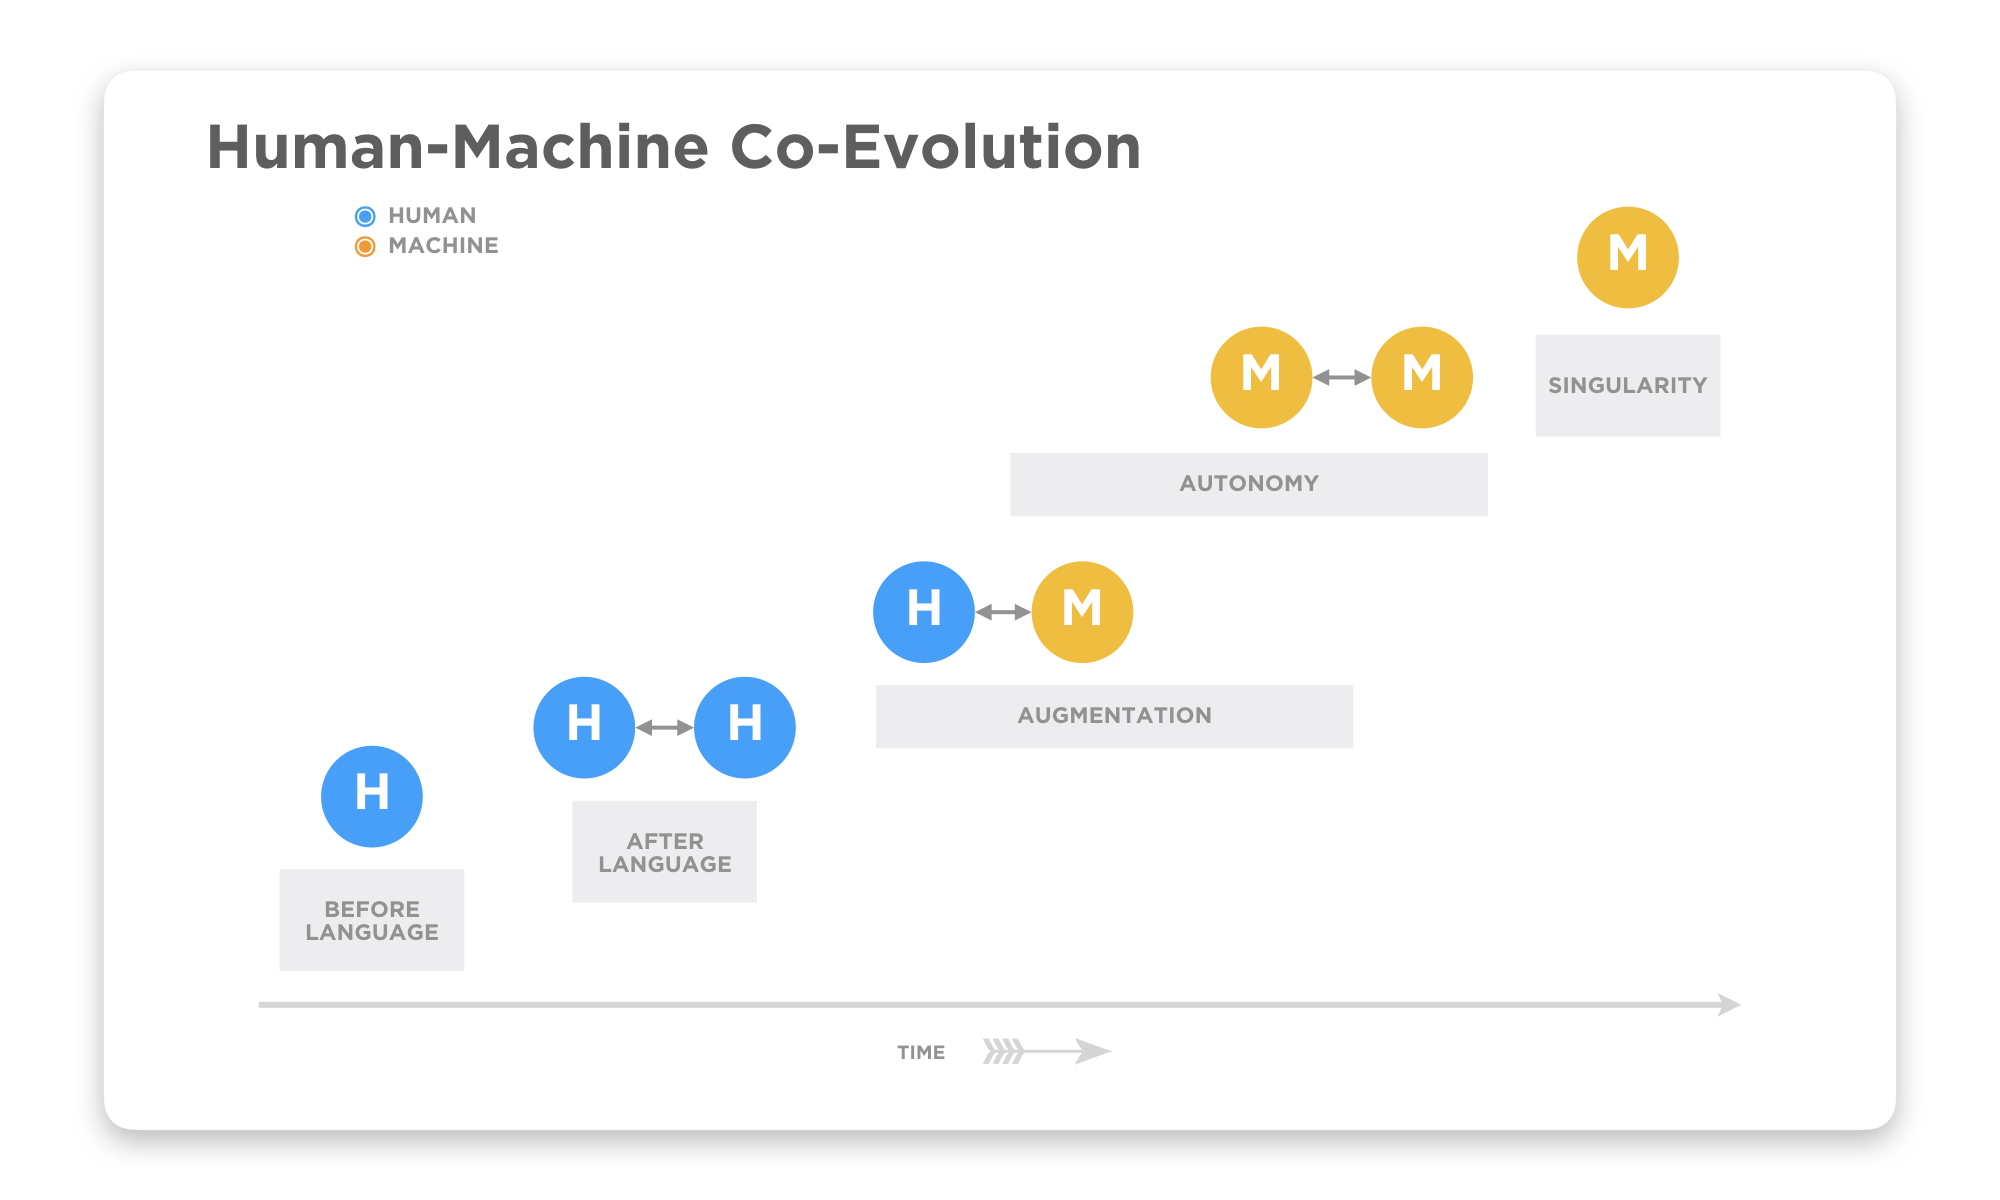 """We are in the midst of a grand historical collaboration between humans and machines that began with the industrial revolutions and will continue with the balance of the broadest definition of """"work"""" shifting from humans to machines. But this evolution will involve a significant amount of augmentation (i.e., direct human/machine collaboration) as opposed to complete delegation (autonomy). And even in the case of trusted autonomy (short of the mythical singularity which is at best many generations away), there will still ultimately be human oversight."""